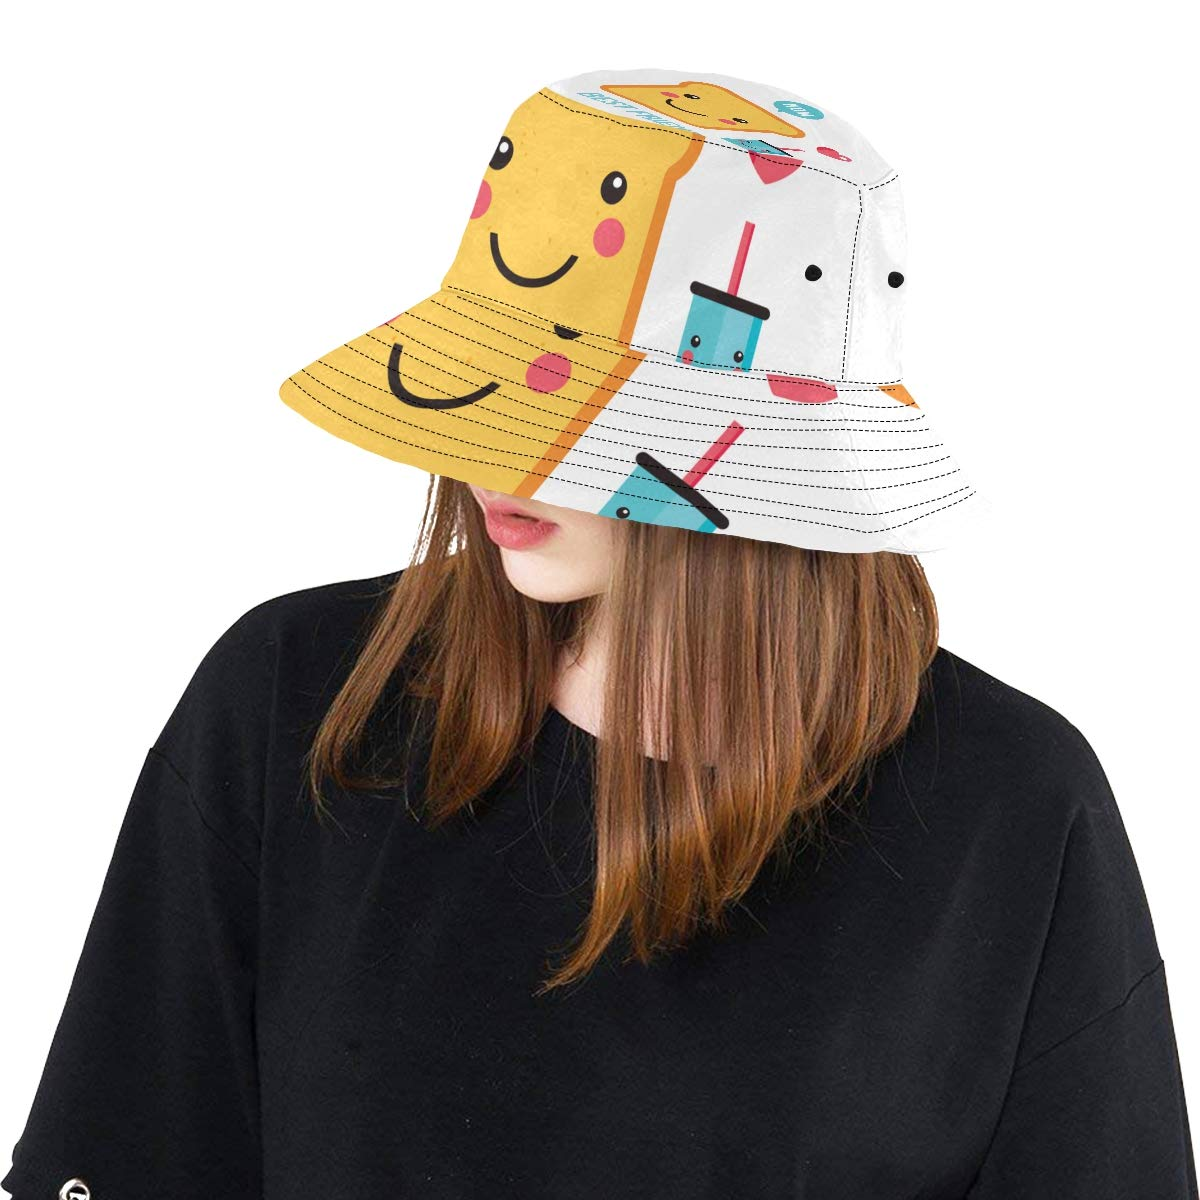 Toast Bread Cute Cartoon Breakfast New Summer Unisex Cotton Fashion Fishing Sun Bucket Hats for Kid Teens Women and Men with Customize Top Packable Fisherman Cap for Outdoor Travel